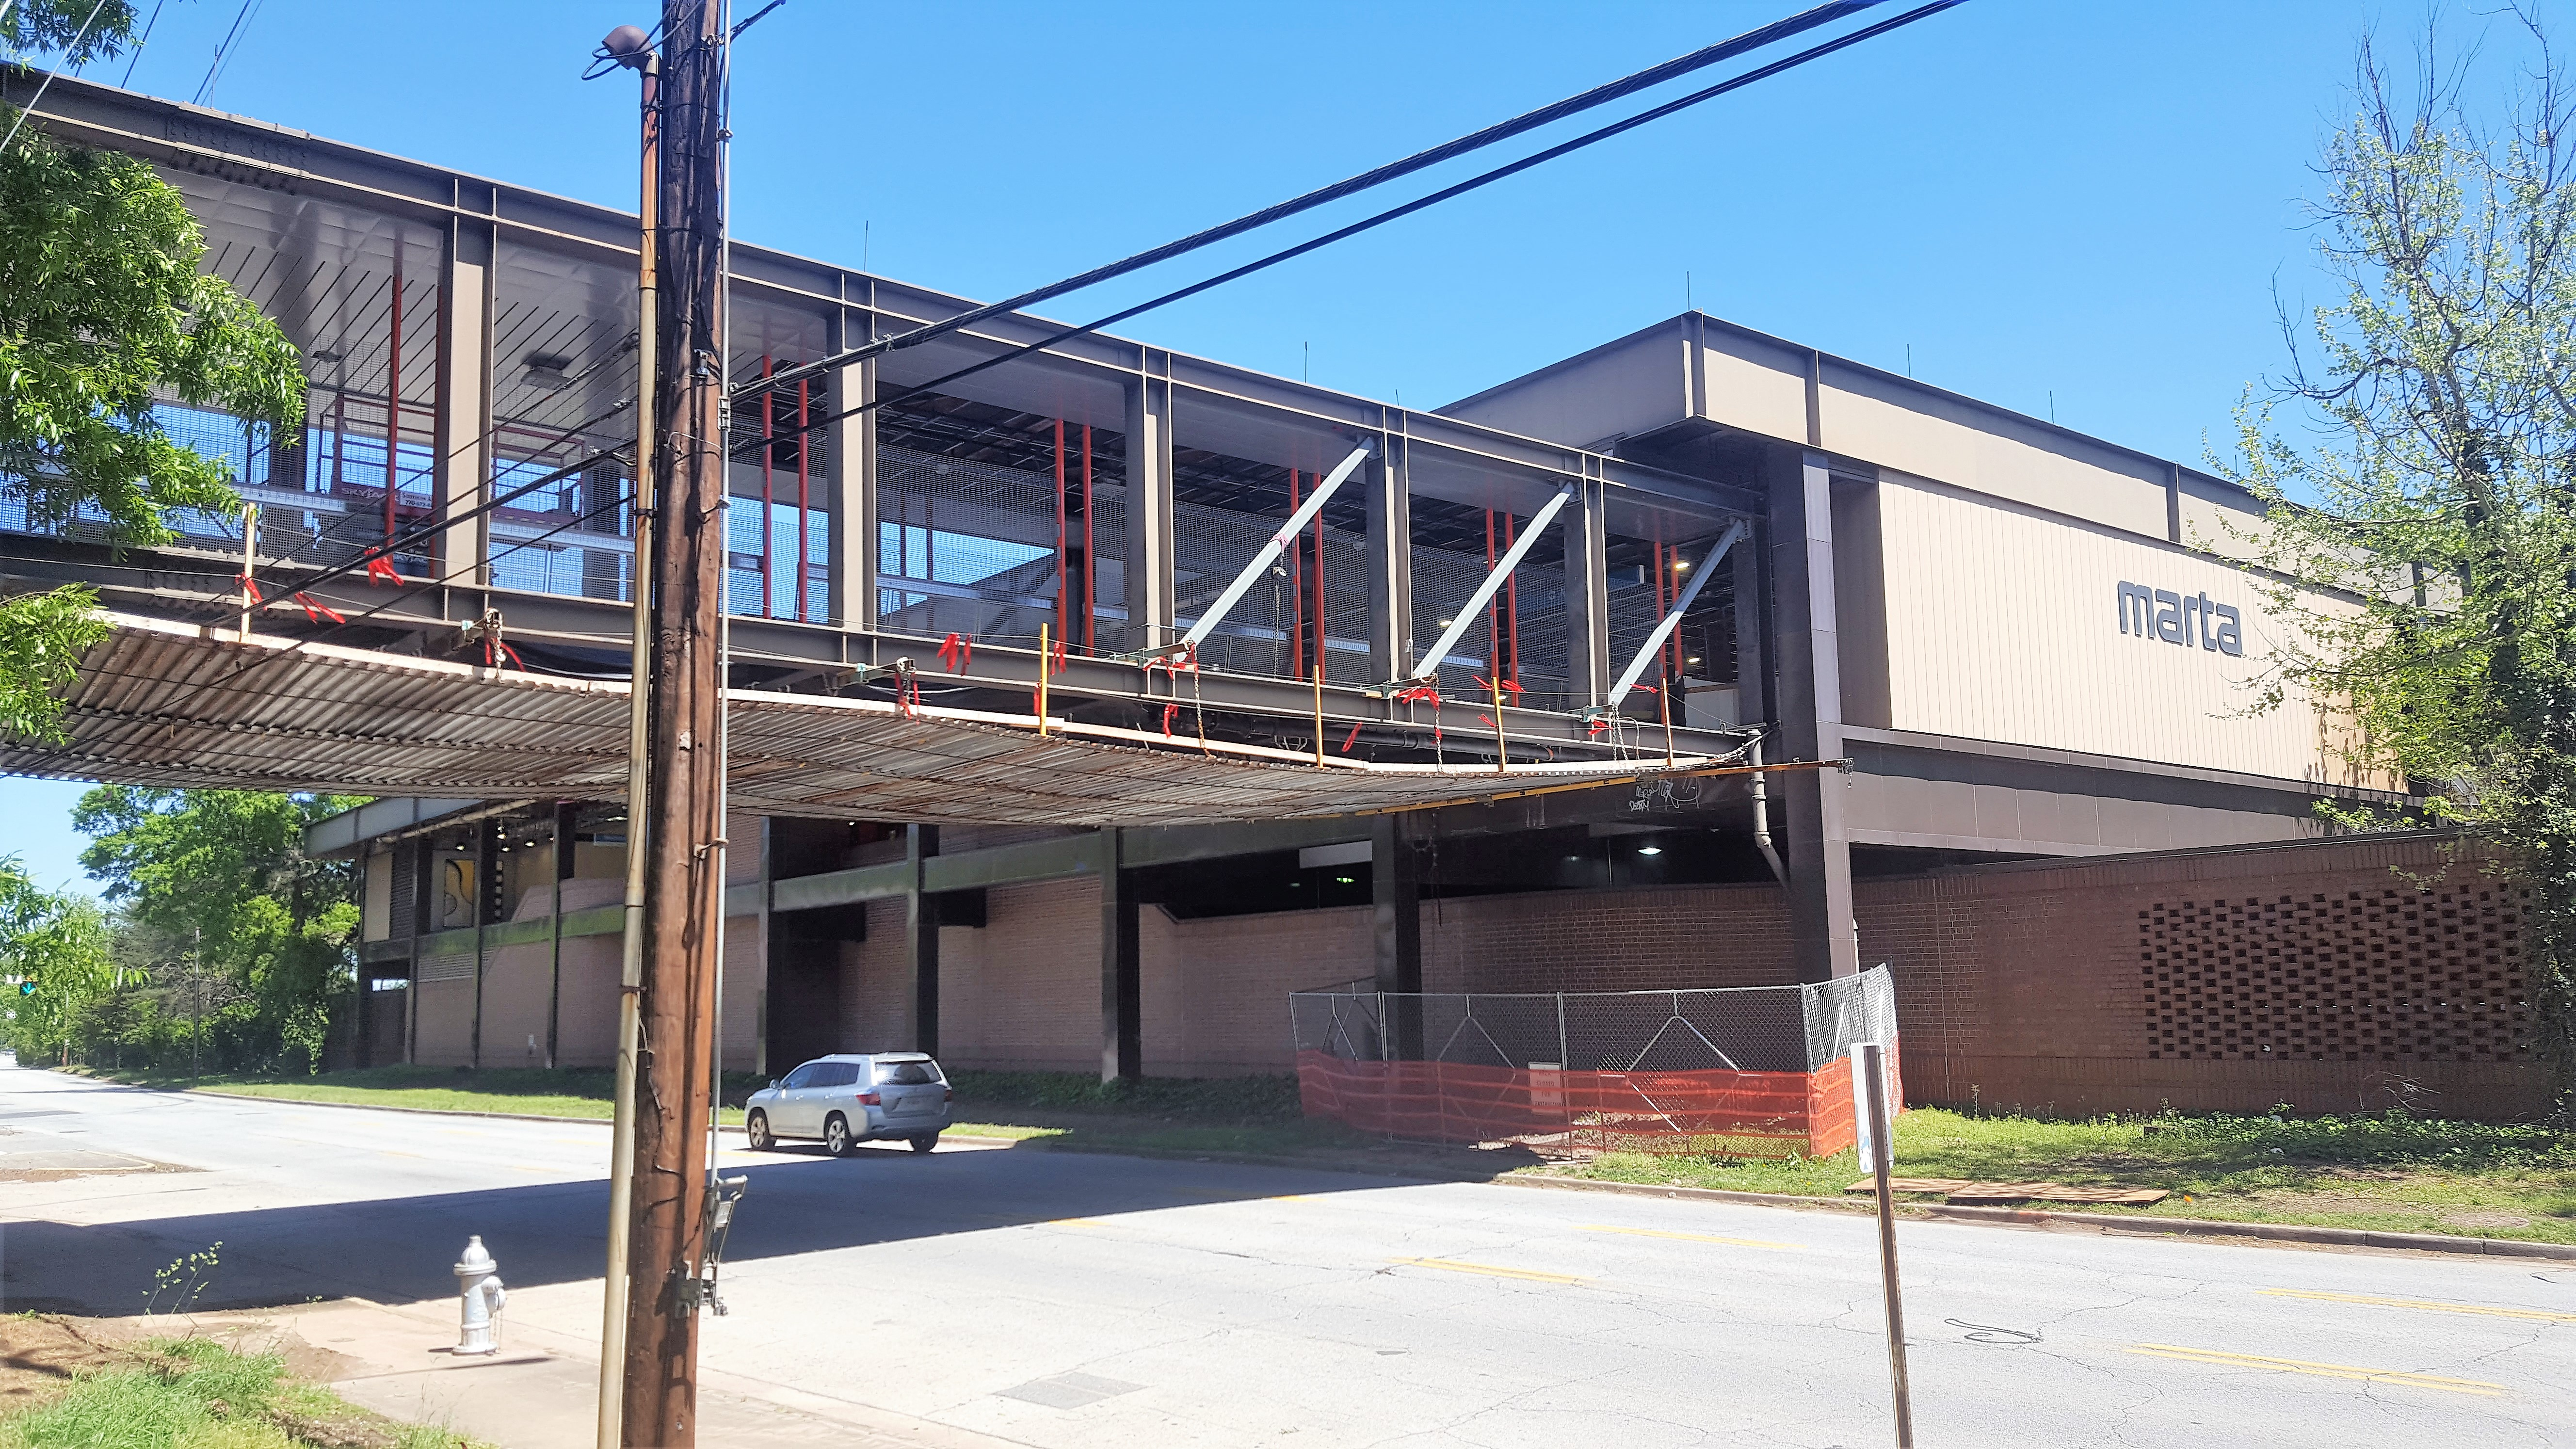 a picture of the under renovation marta stop